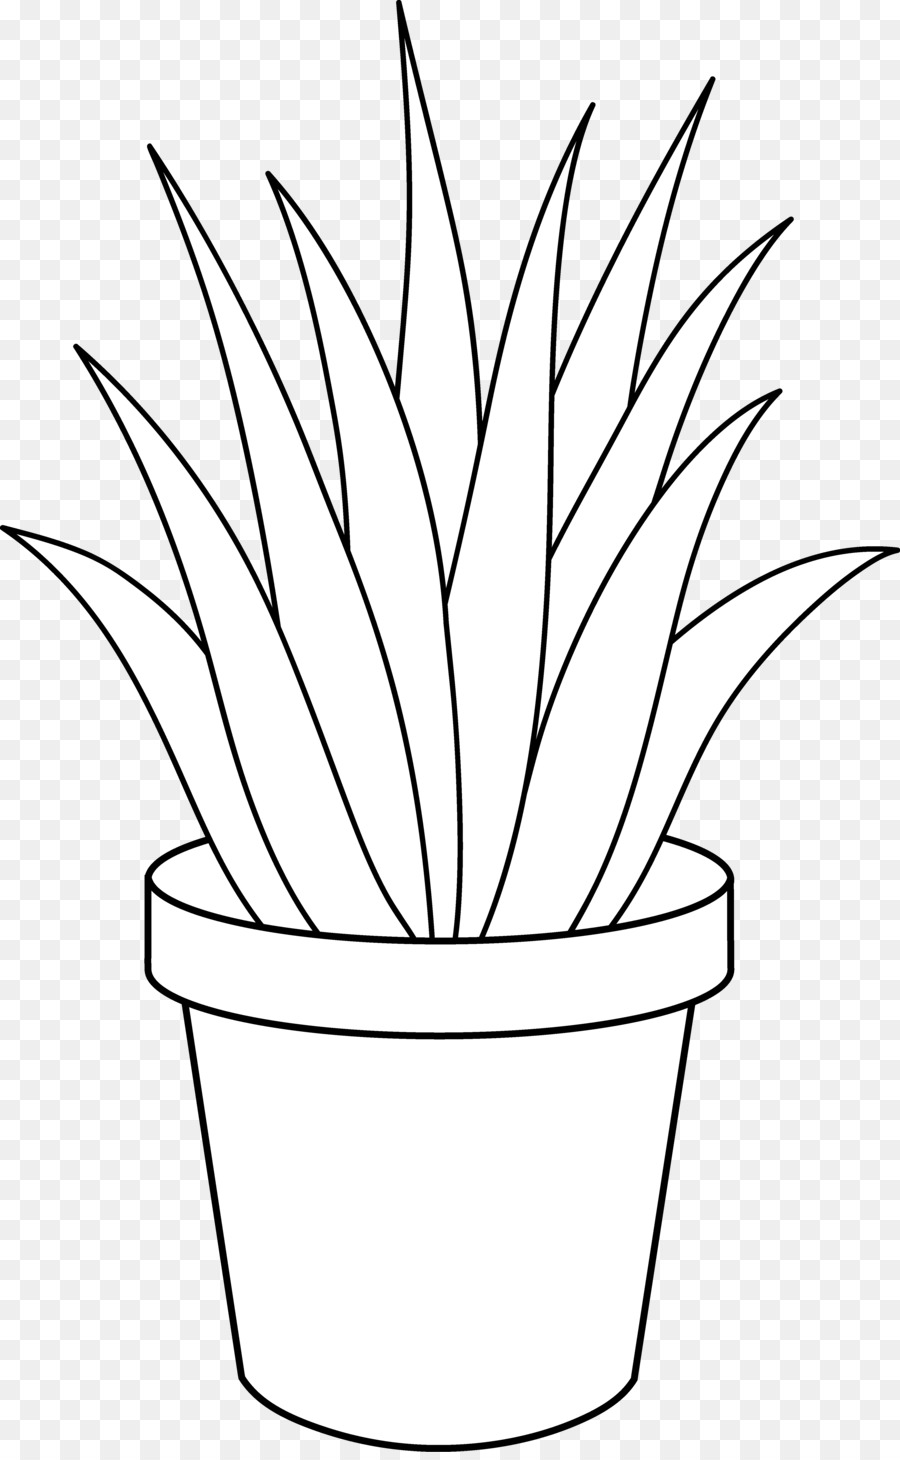 Black and white clipart plant clip library download Plant black and white clipart 4 » Clipart Station clip library download